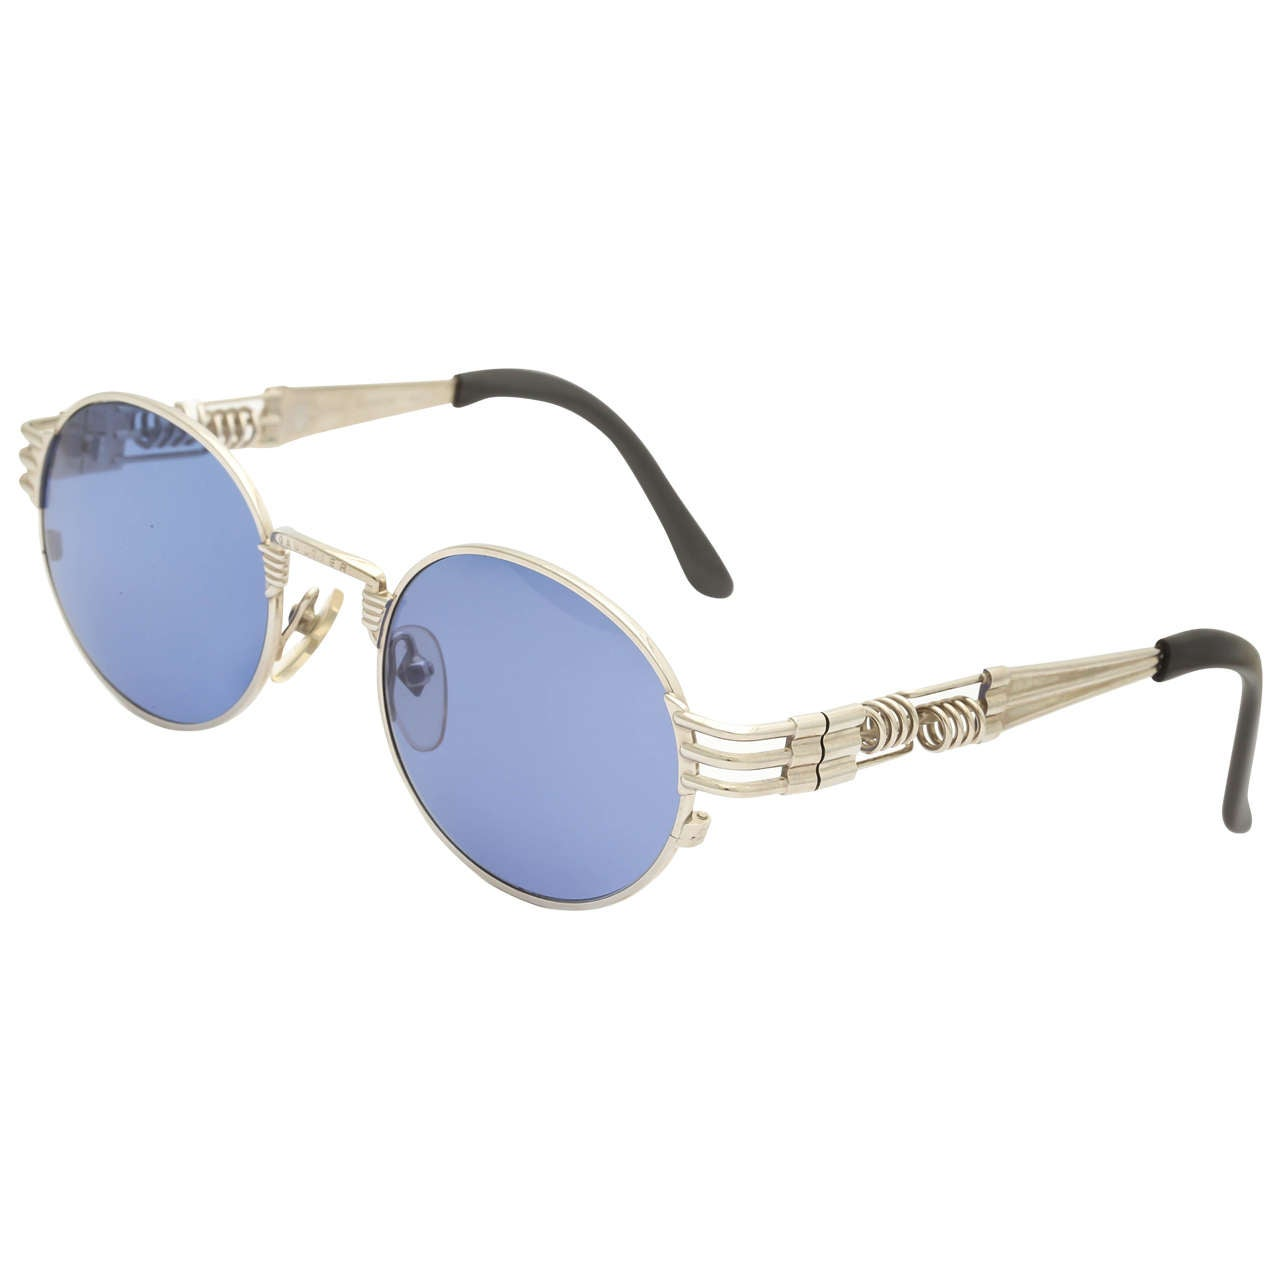 Gaultier Sunglasses  jean paul gaultier 56 6106 silver sunglasses for at 1stdibs